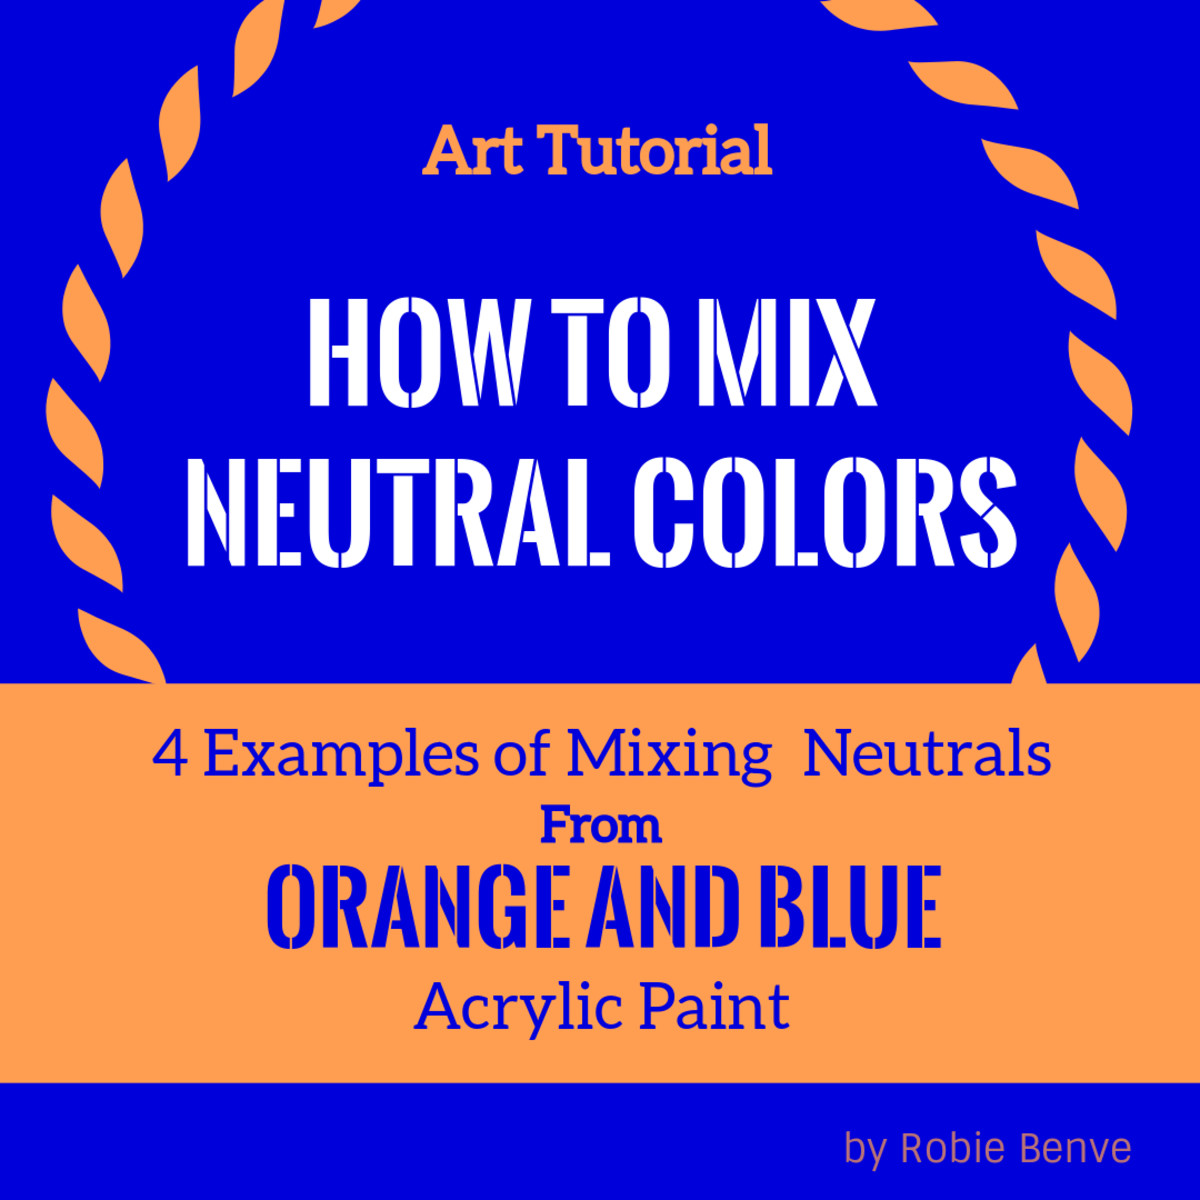 A tutorial on how to mix neutral colors starting from just two colors, one being in the orange family, and the other a blue. A short time-lapse video shows four examples of orange/blue neutral mixes using acrylic paint.